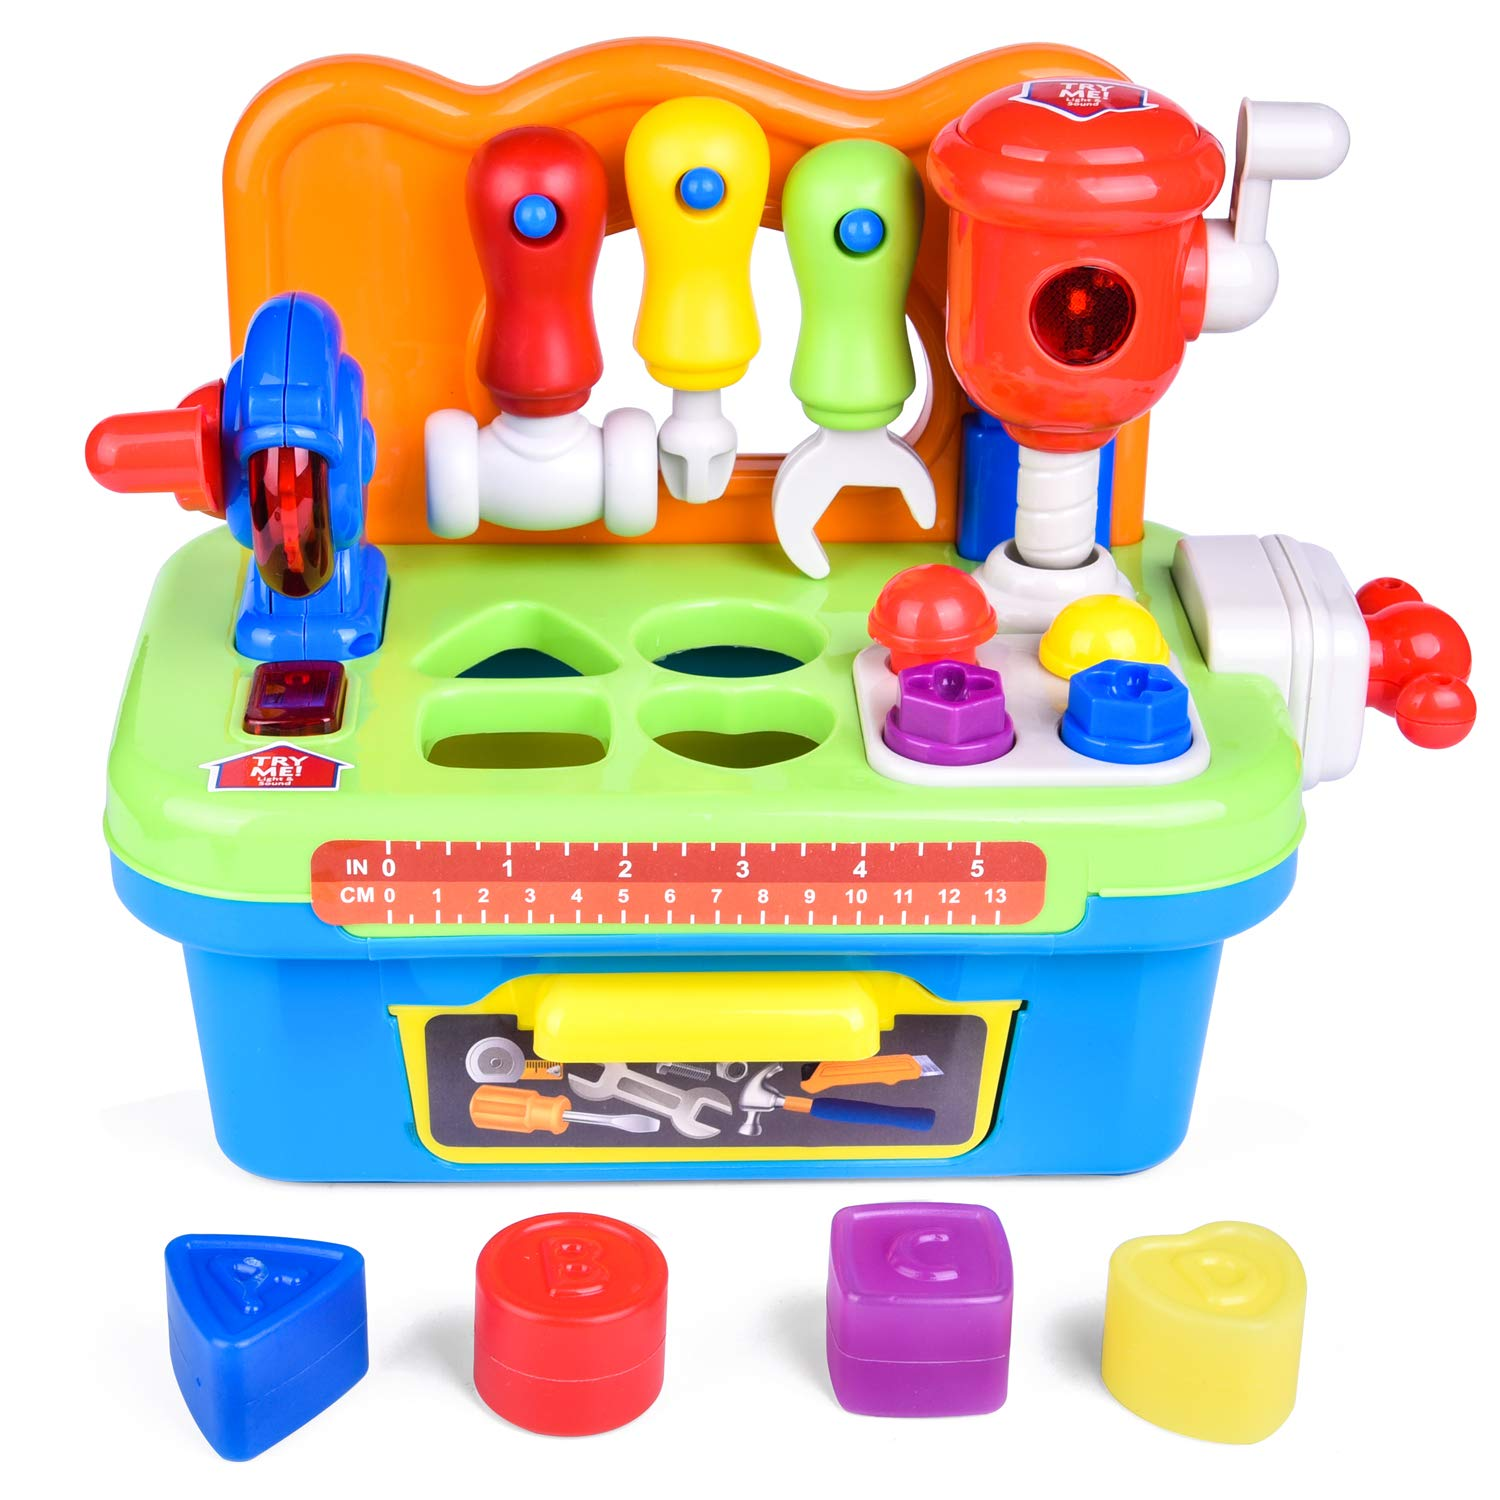 Musical Tool Toys, Workbench Toy for Kids, Construction Toy Tool Kit with Sound and Music, Activity Center for Kids with Shape Sorter by FUN LITTLE TOYS